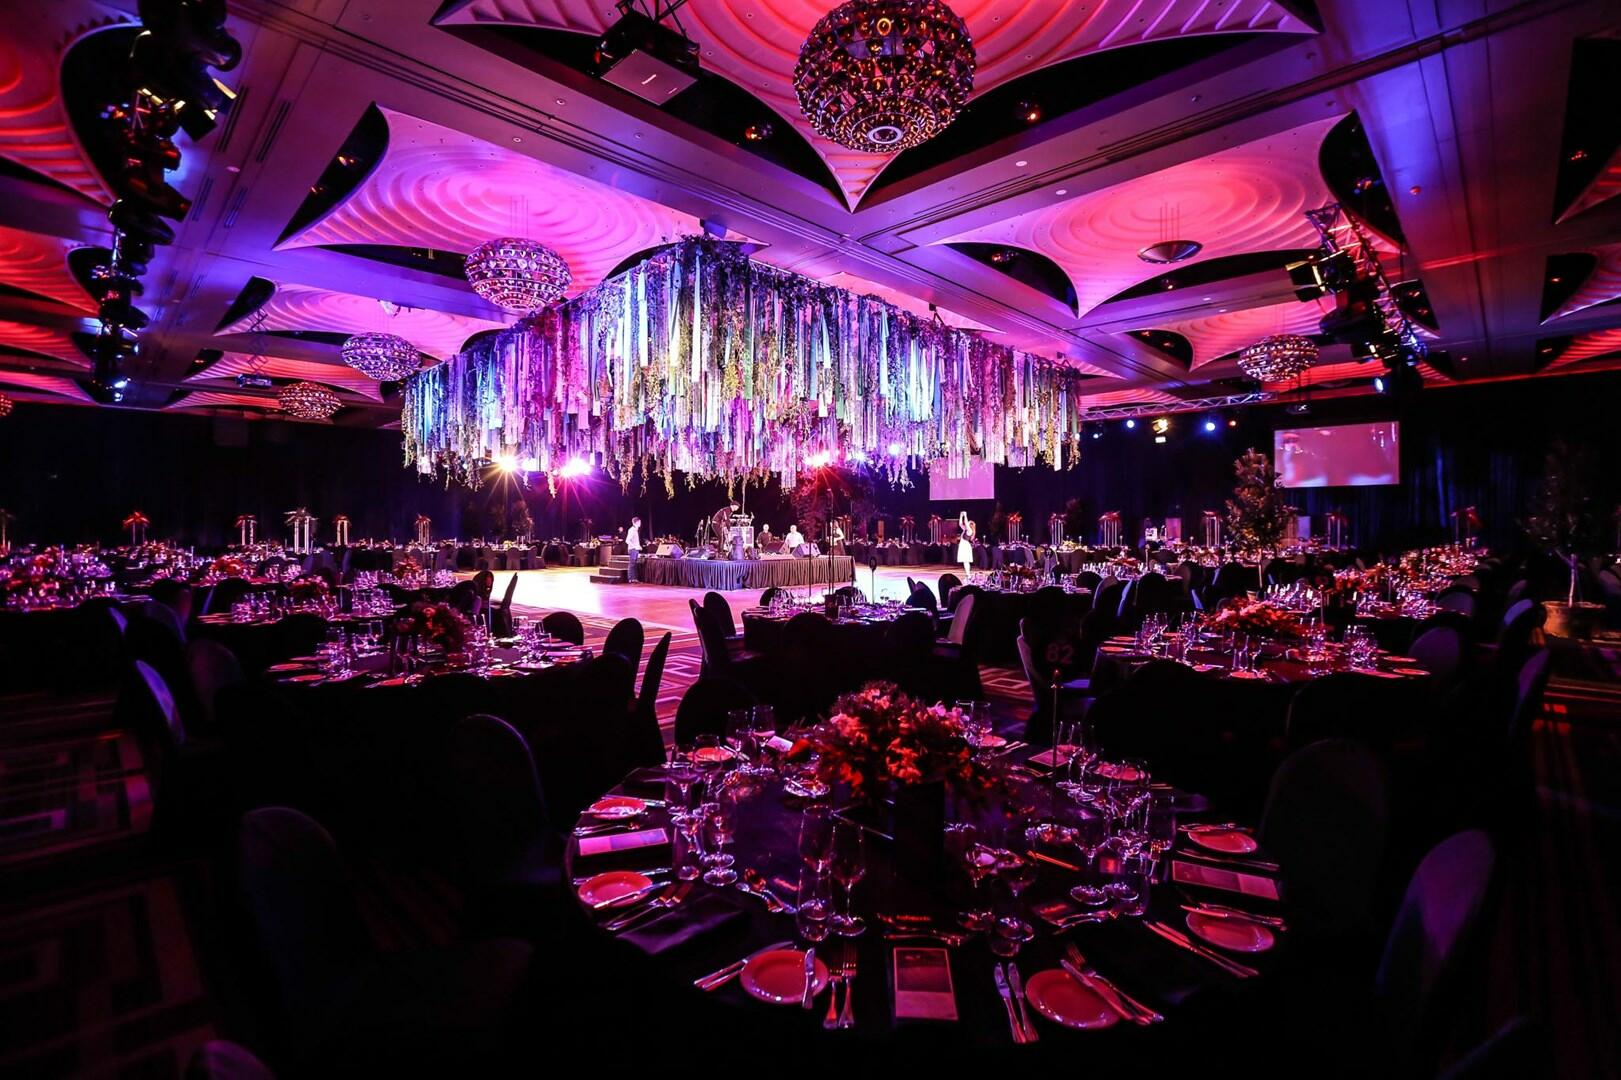 Events & conferences at Melbourne hotel